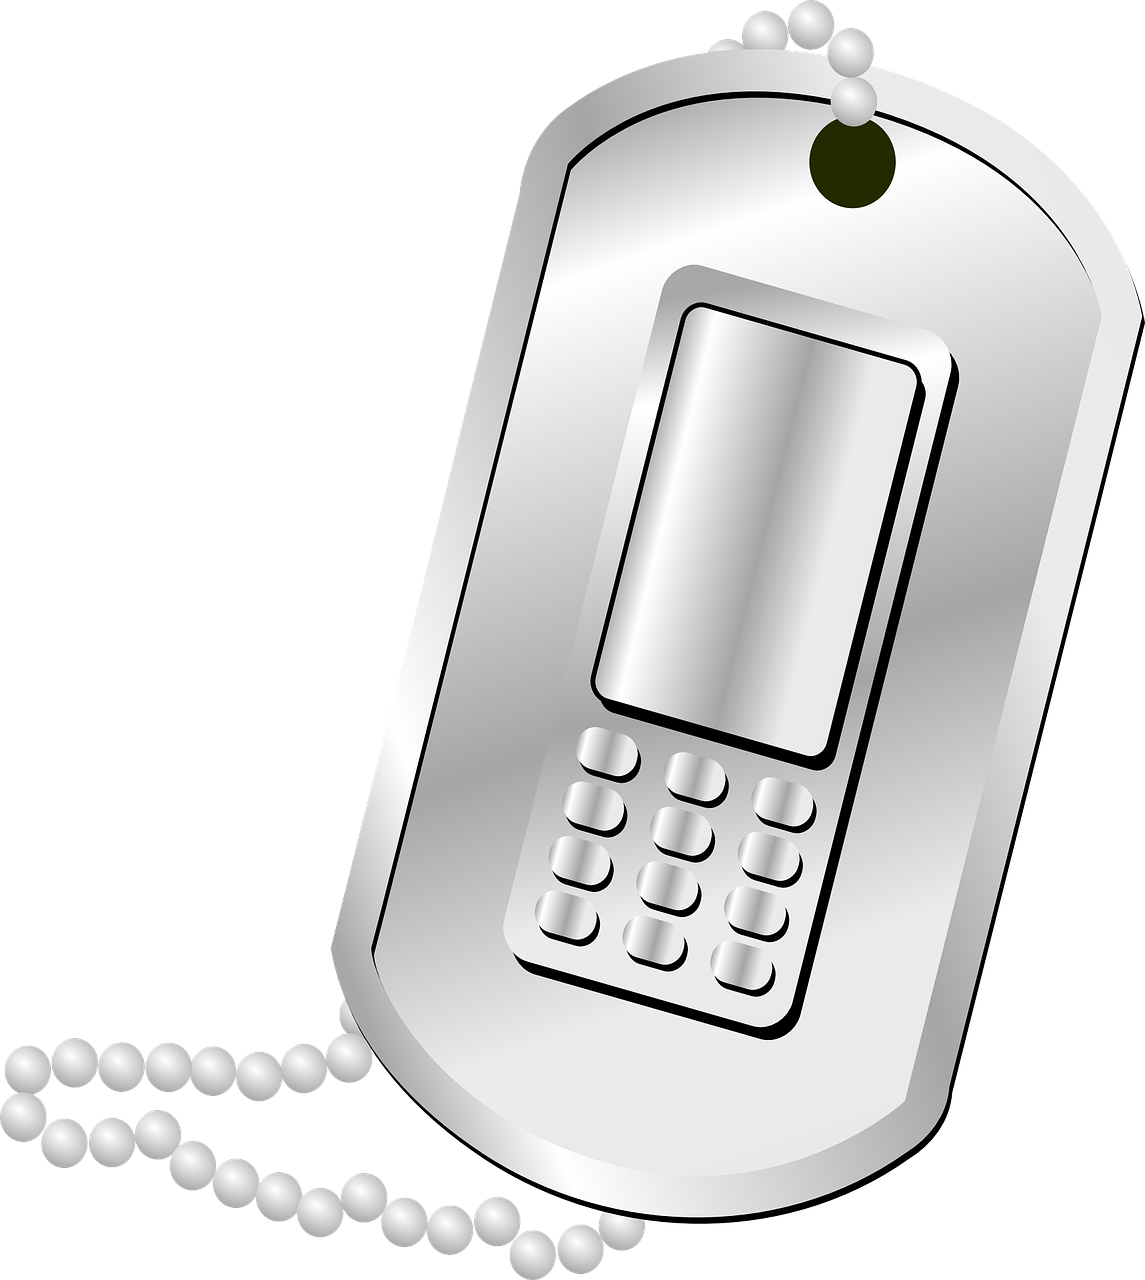 Phone Communication Metal Clip